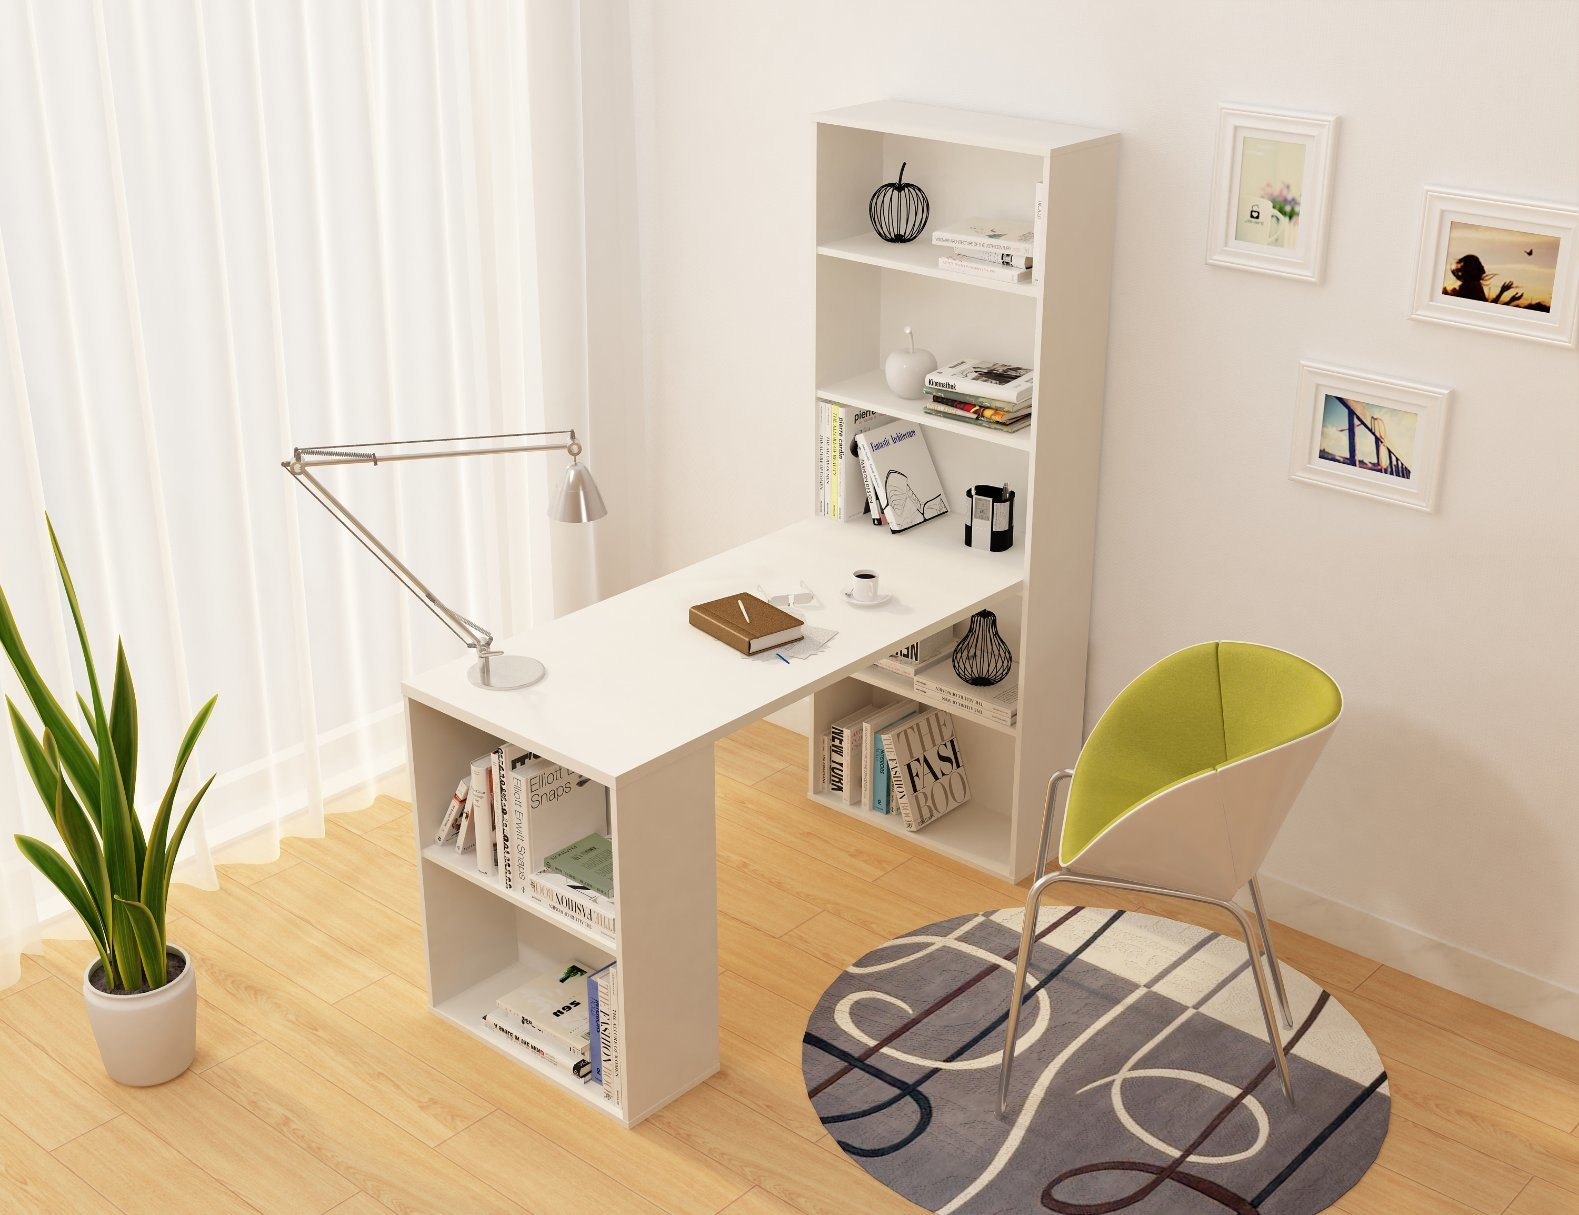 China Factory Office Furniture Wooden Computer Table Desk With Bookshelf Modern